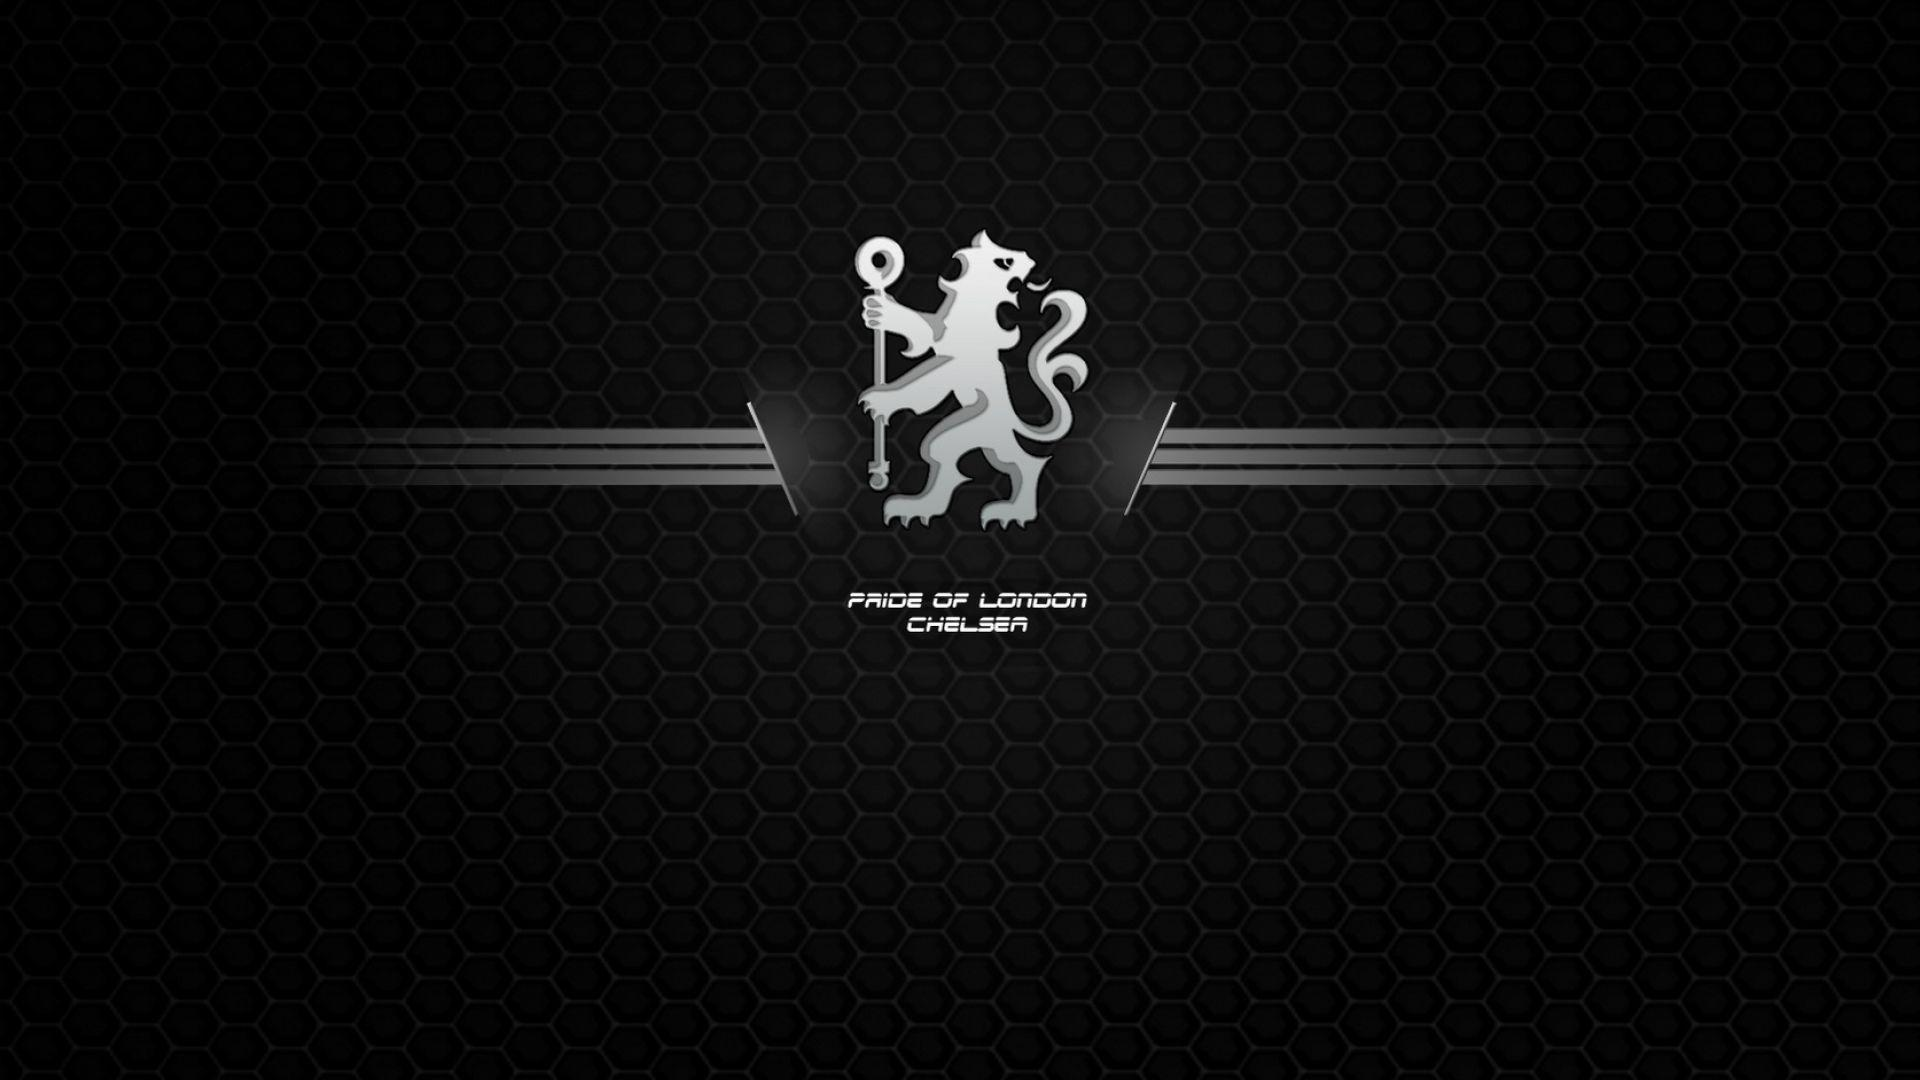 Chelsea Cool Carbon Logo Wallpapers Wide or HD